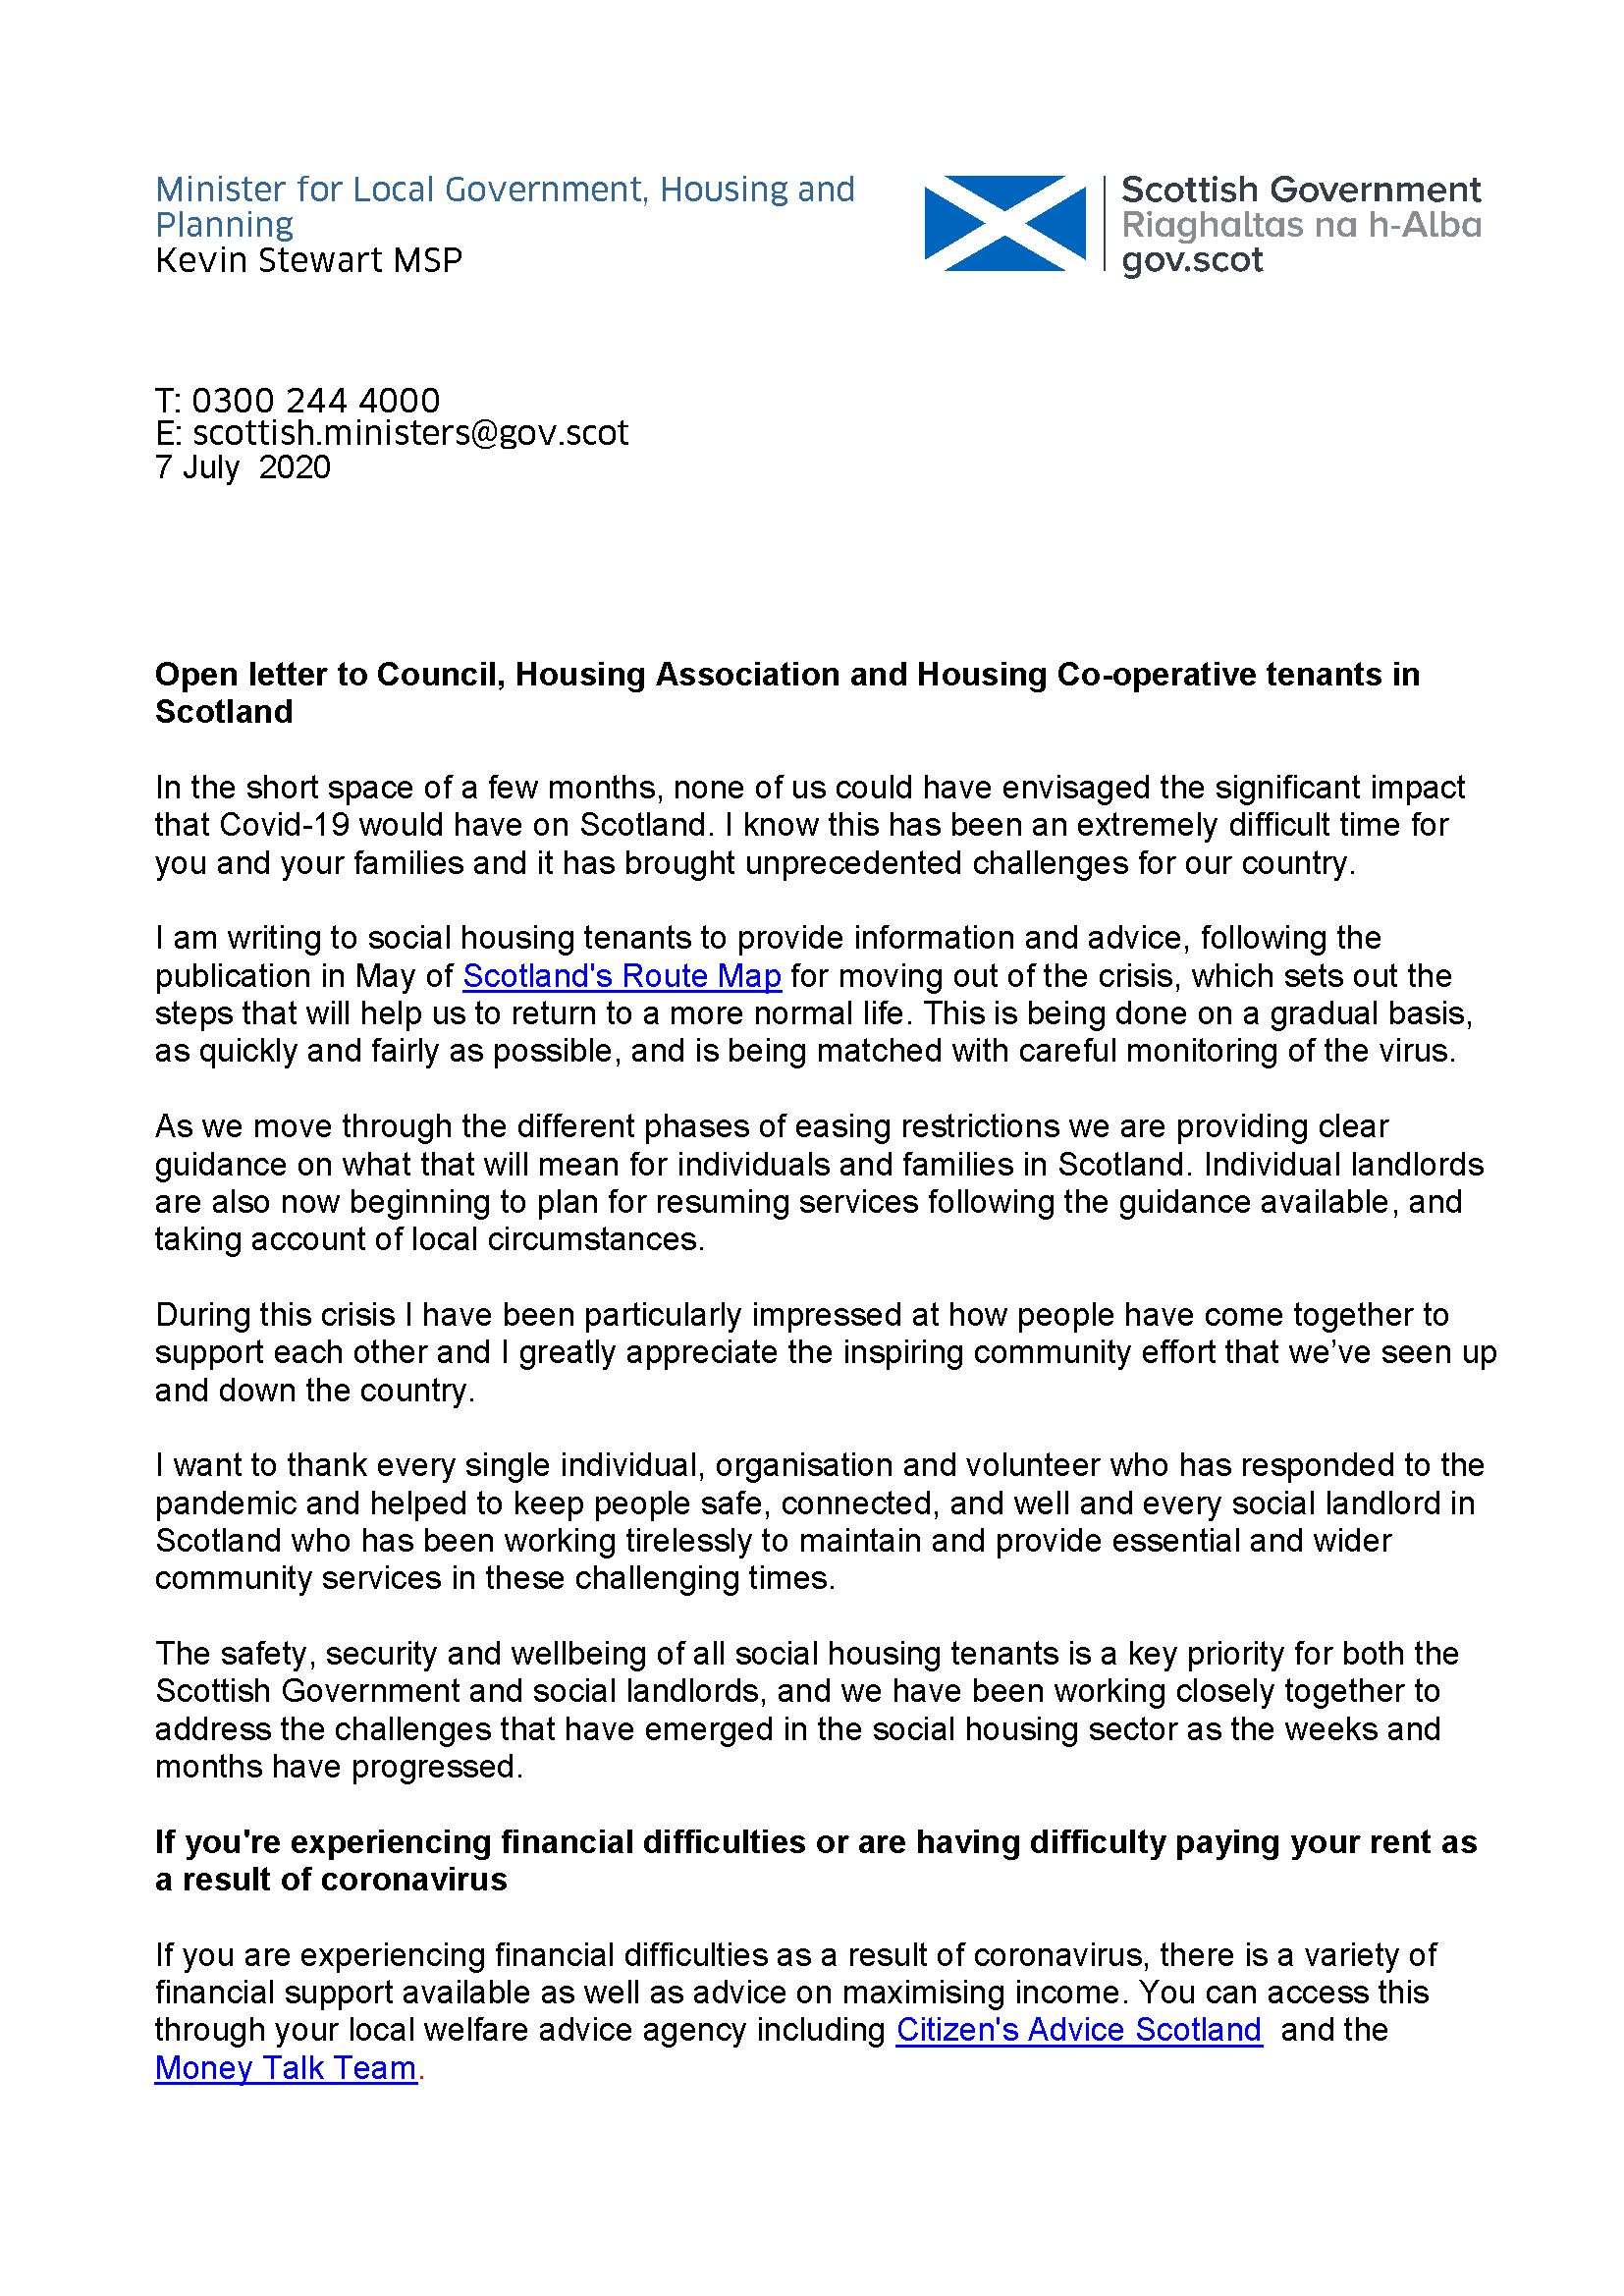 7 July 2020 Letter to social housing tenants from Minister for Local Government Housing and Planning